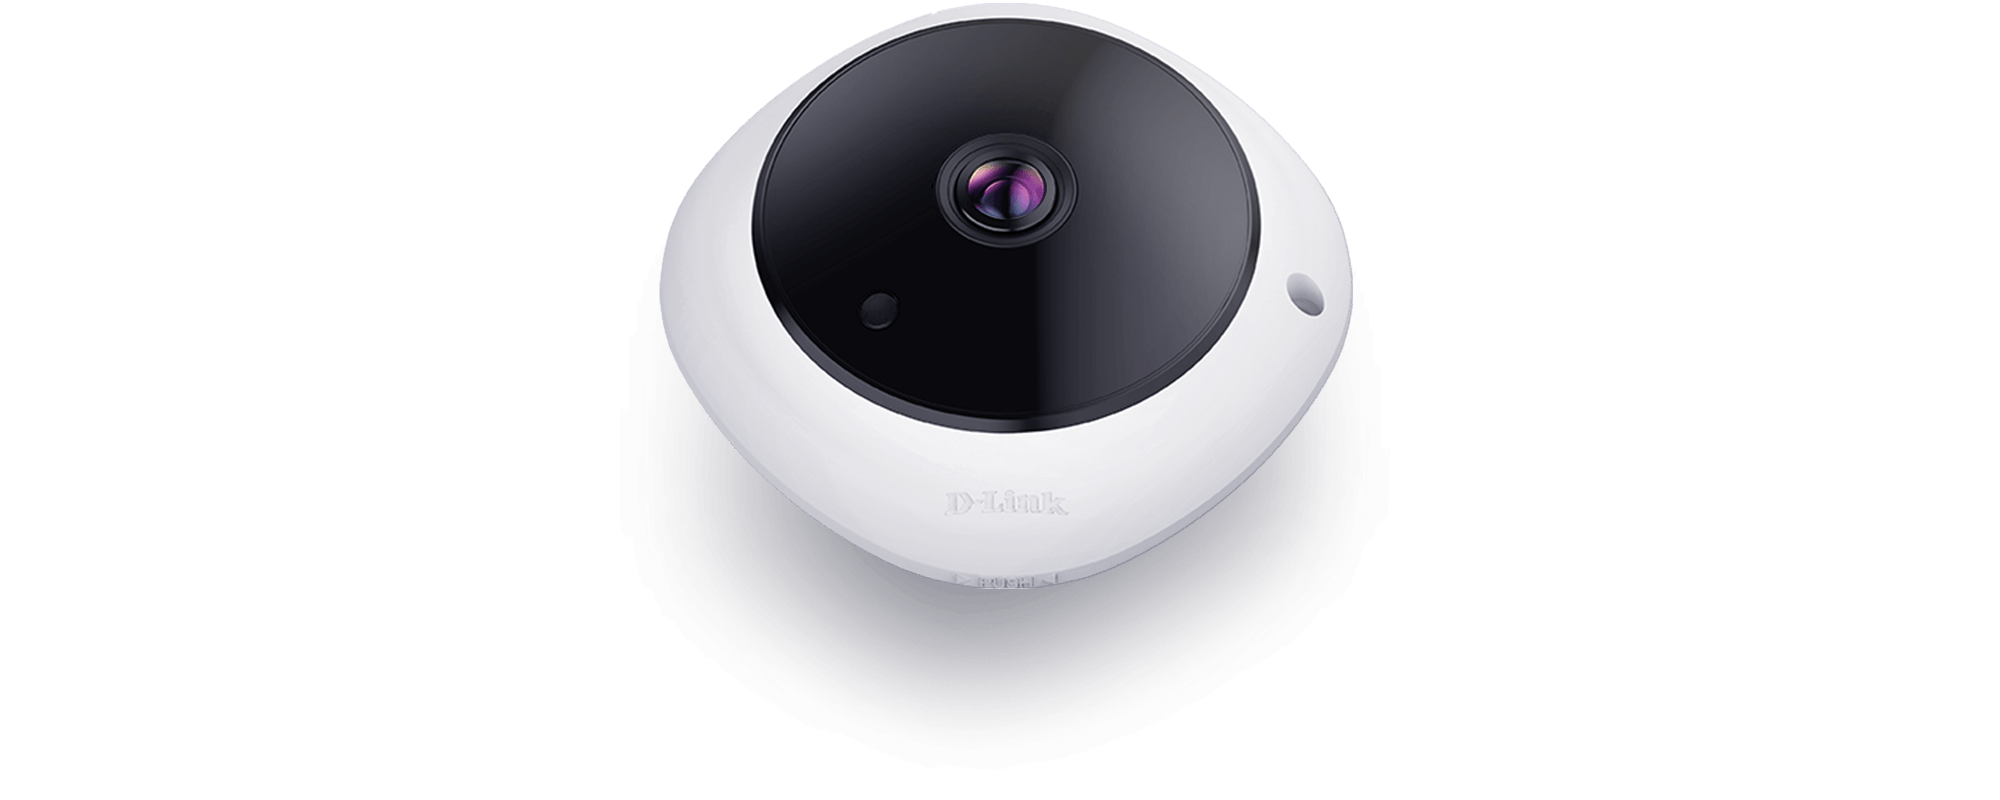 DCS-4625 5-Megapixel Panoramic Fisheye Camera - Overview